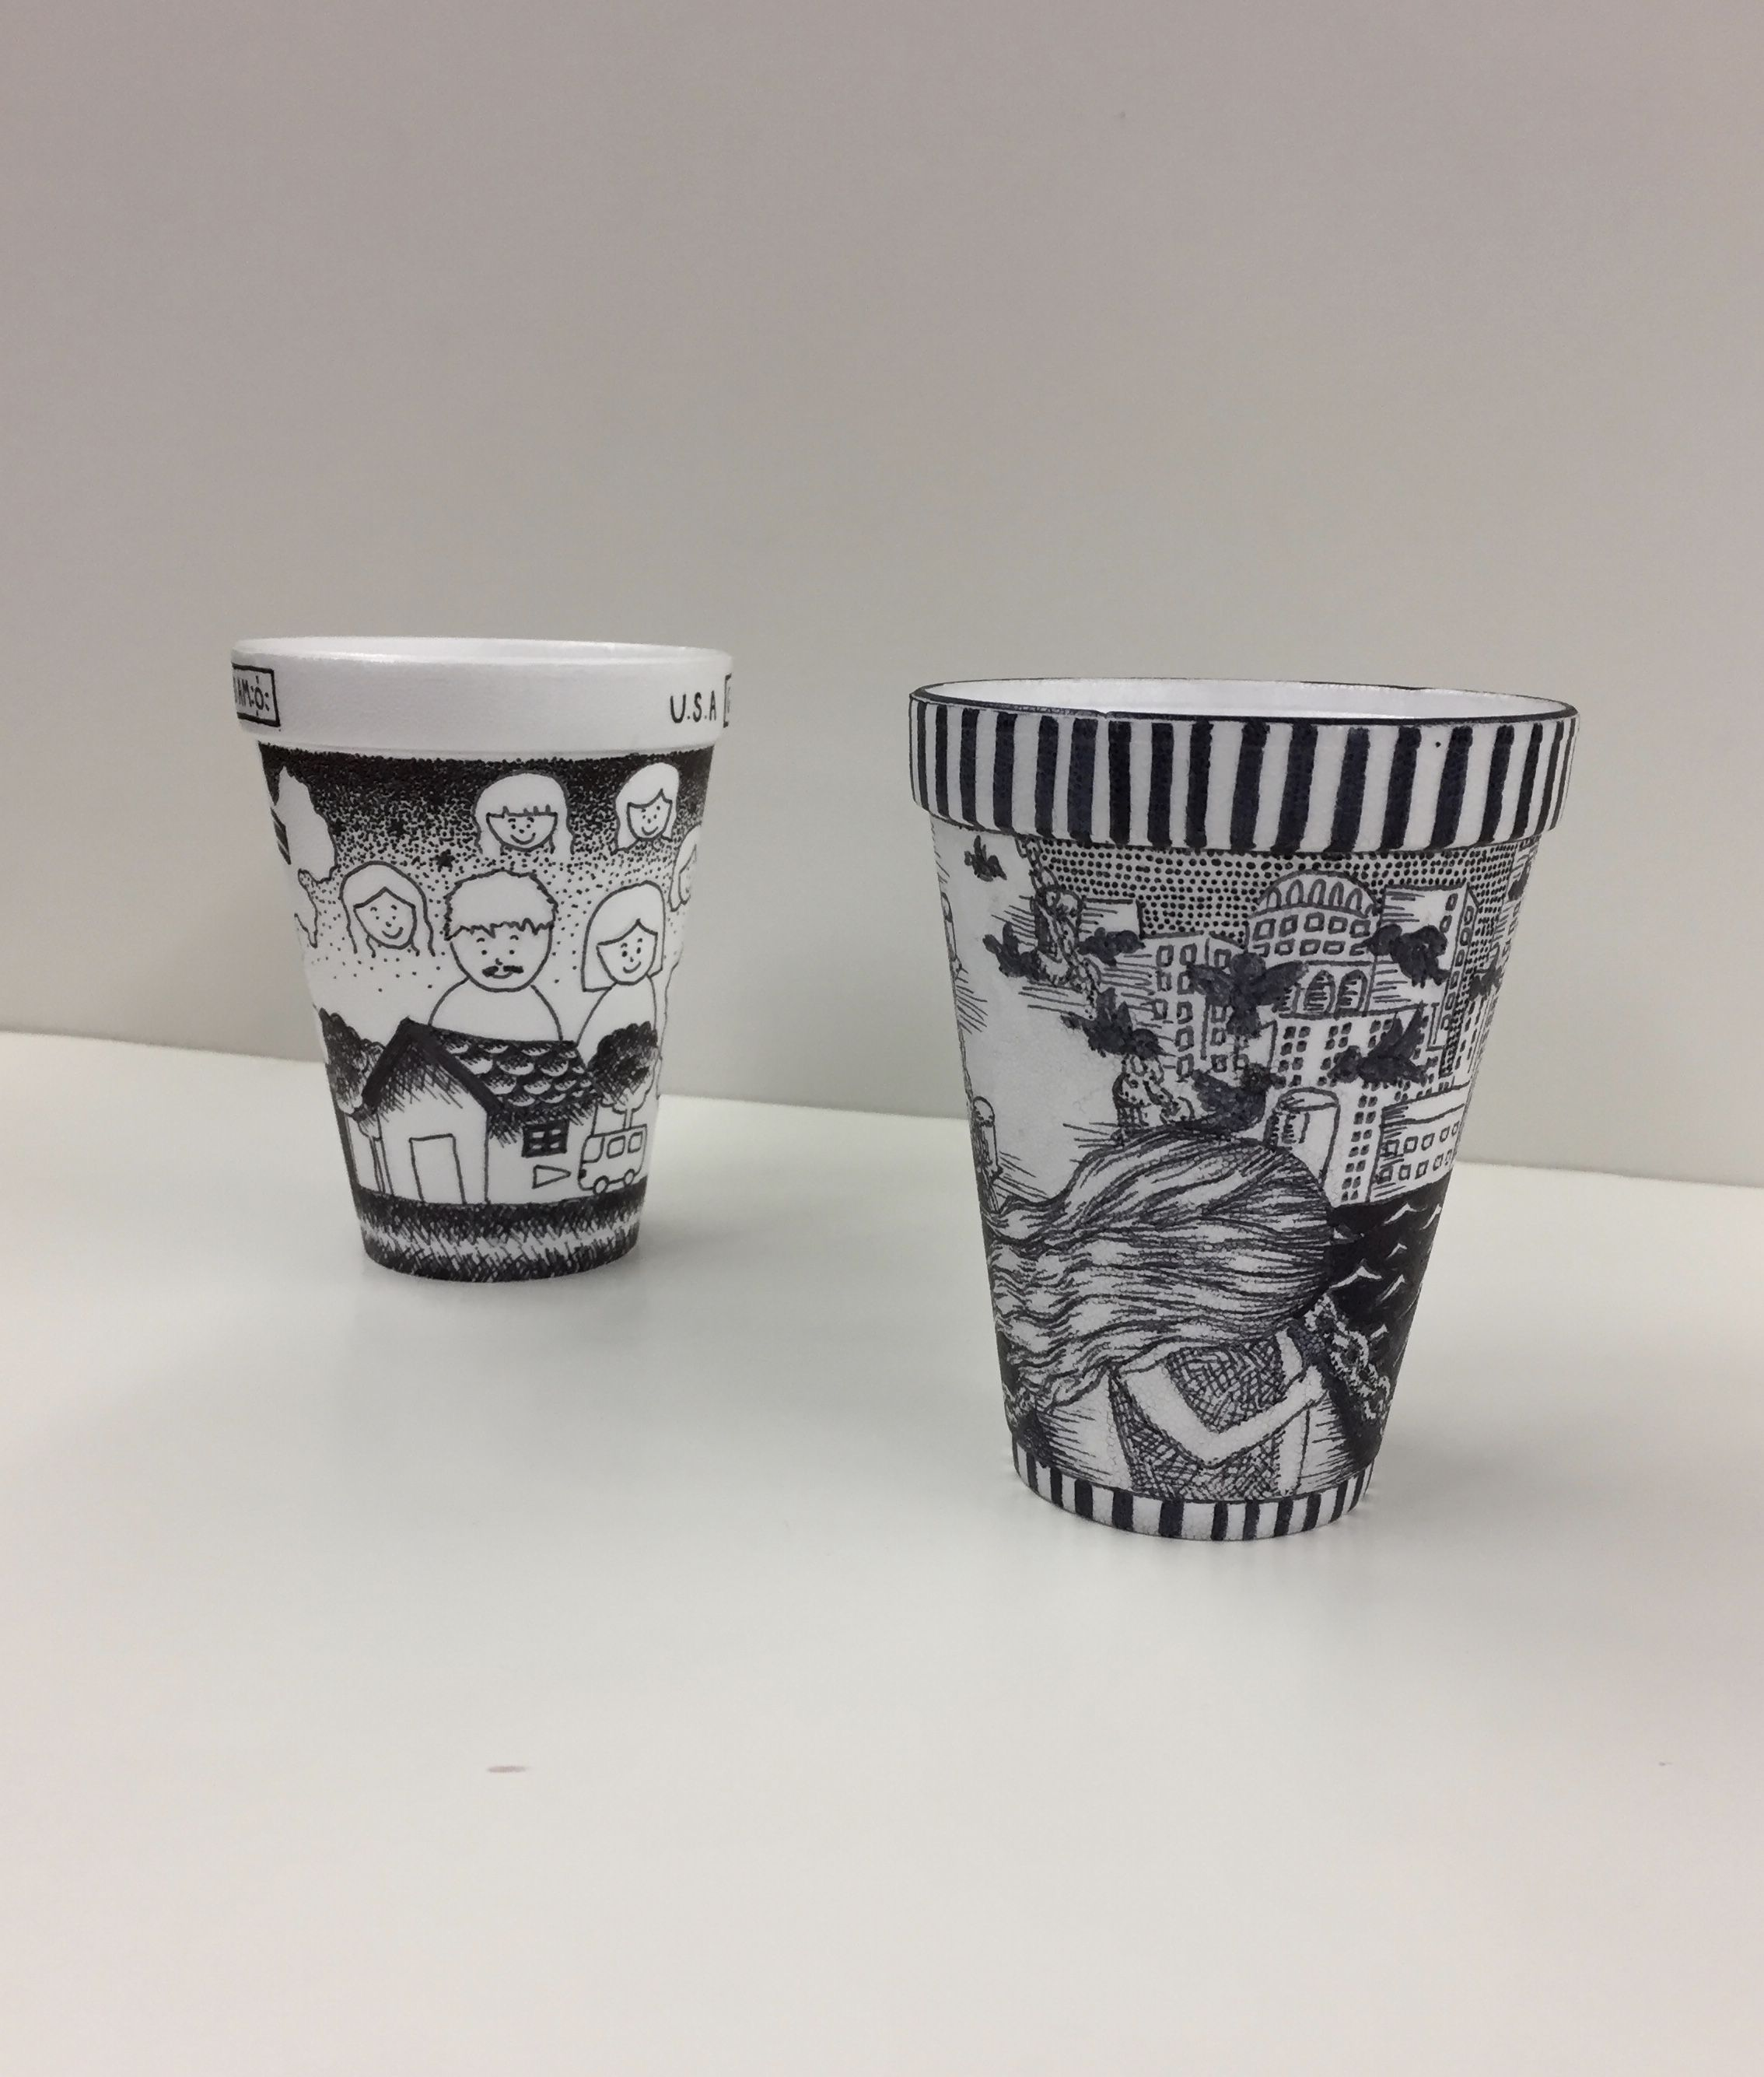 Using Cross Hatching And Stippling On Cups